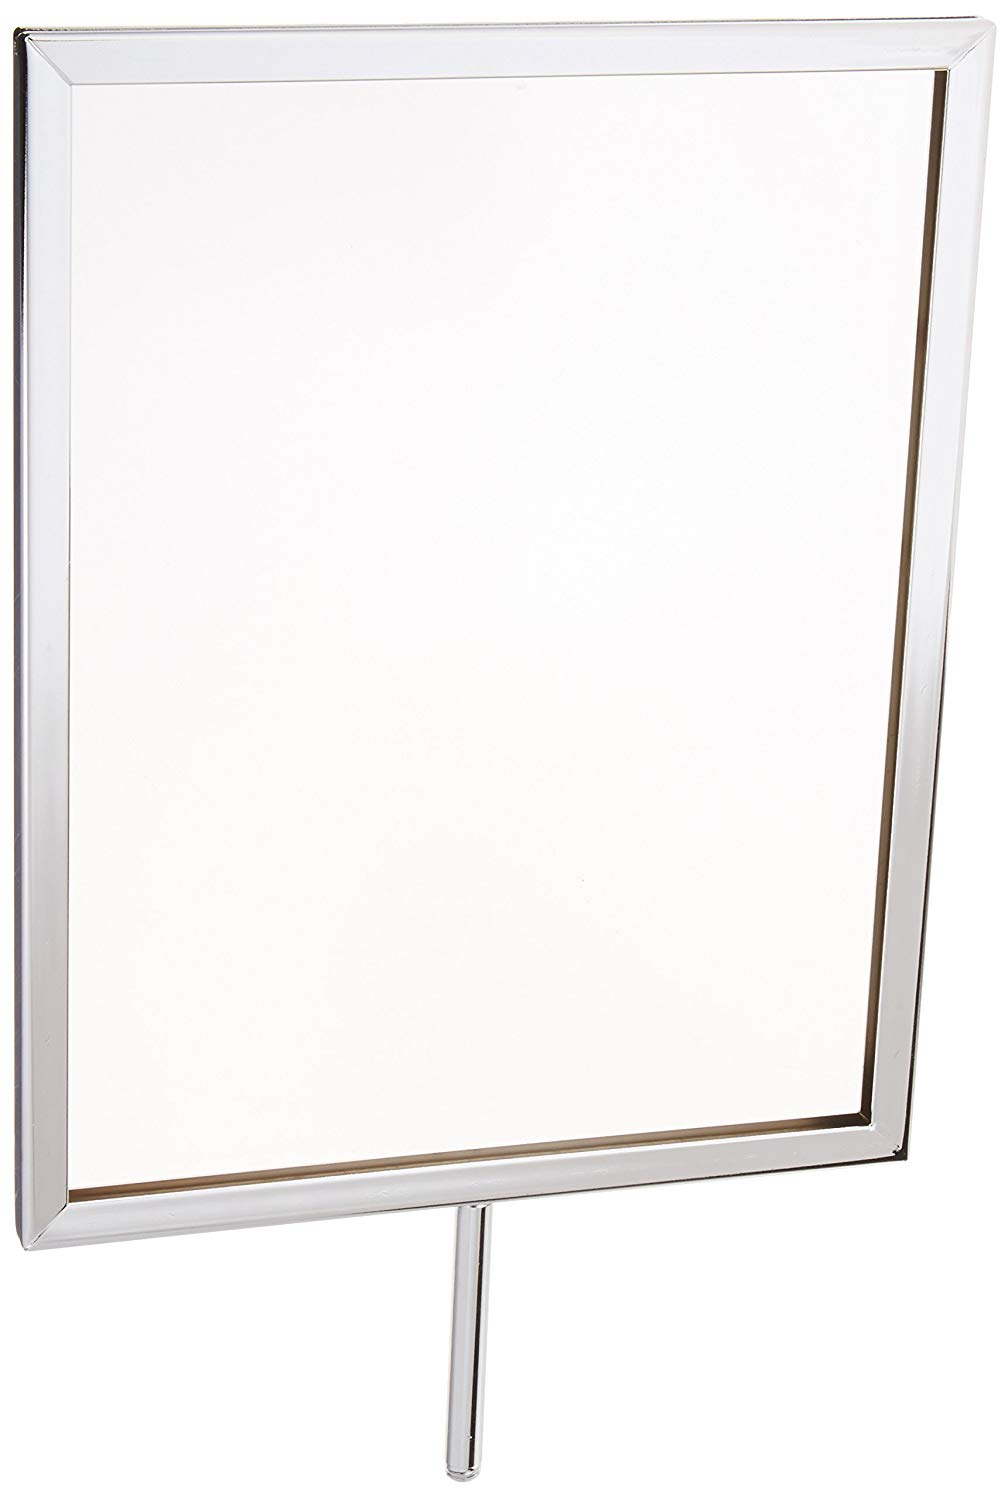 Displays2go 8.5 x 11 Inches Pedestal Sign Frames for Countertop Use, Top-Loading for 1/8-inch Poster Board, Steel Chrome, Set of 10 (RD8511CMMS)